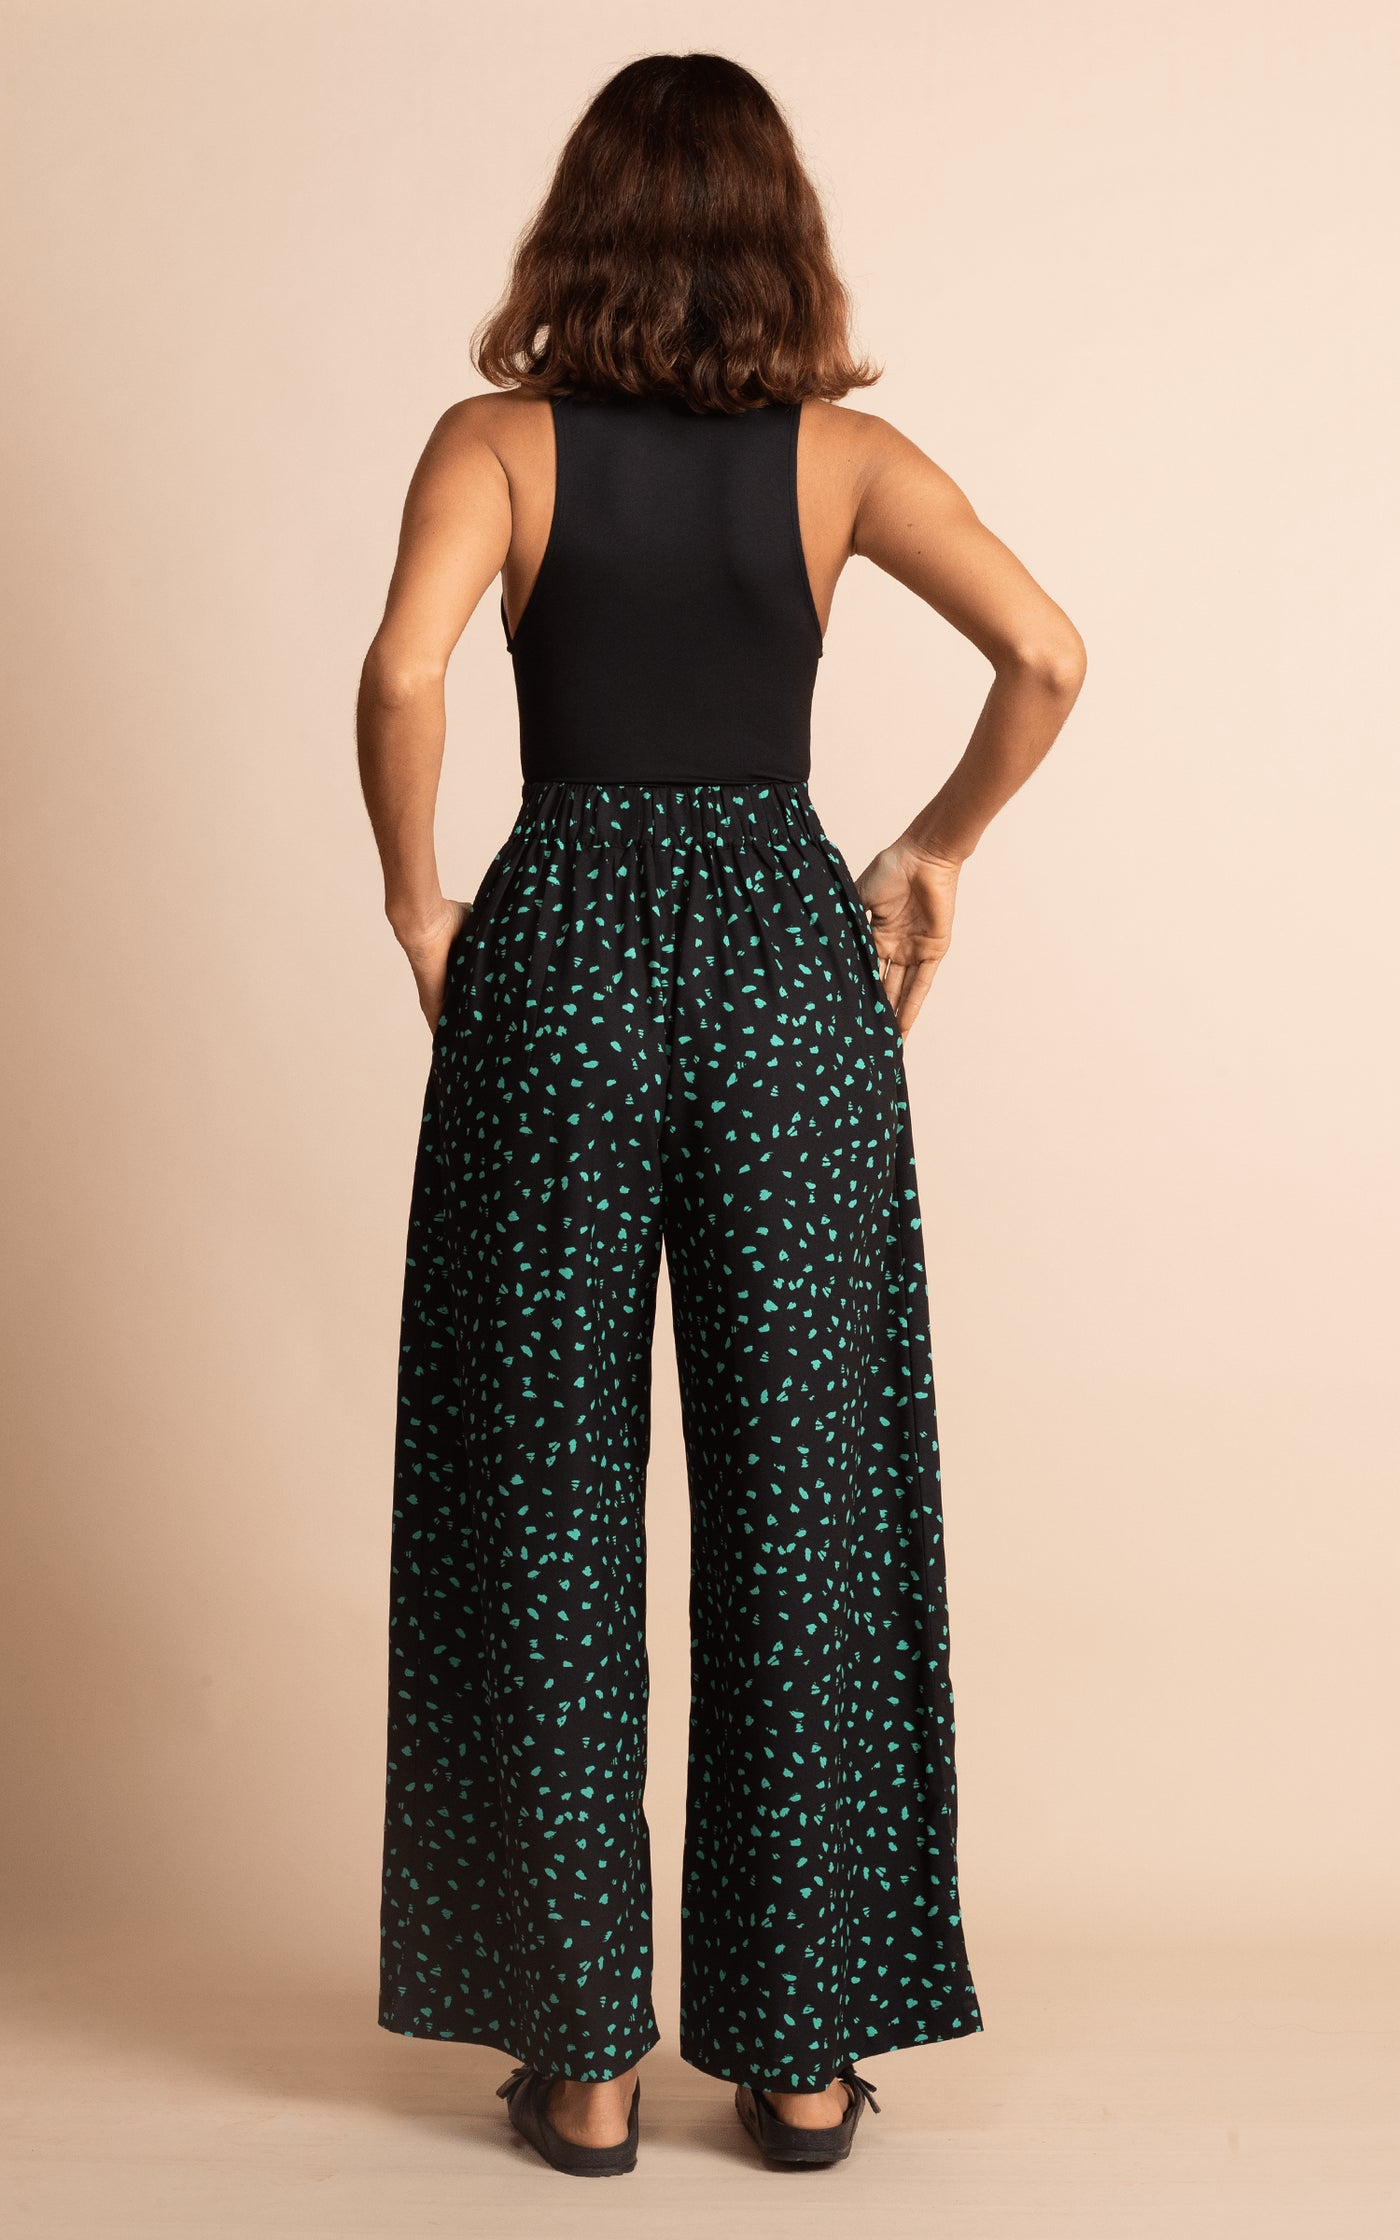 Joey Palazzo Trousers in Abstract Green on Black